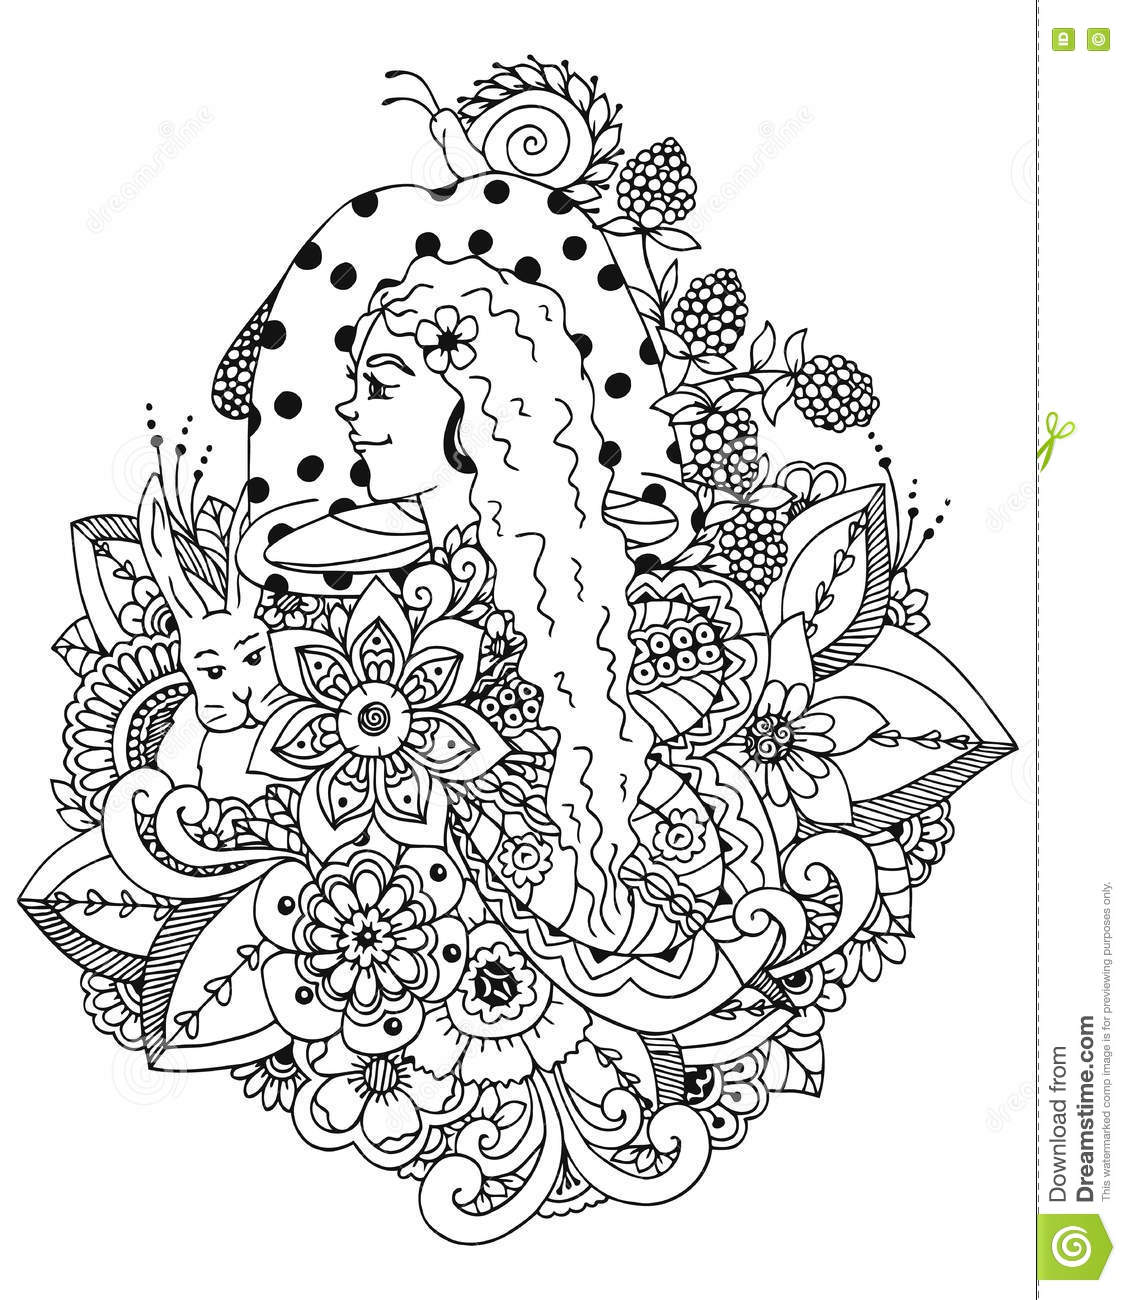 Types Fungi Coloring Sheet Pages Sketch Coloring Page